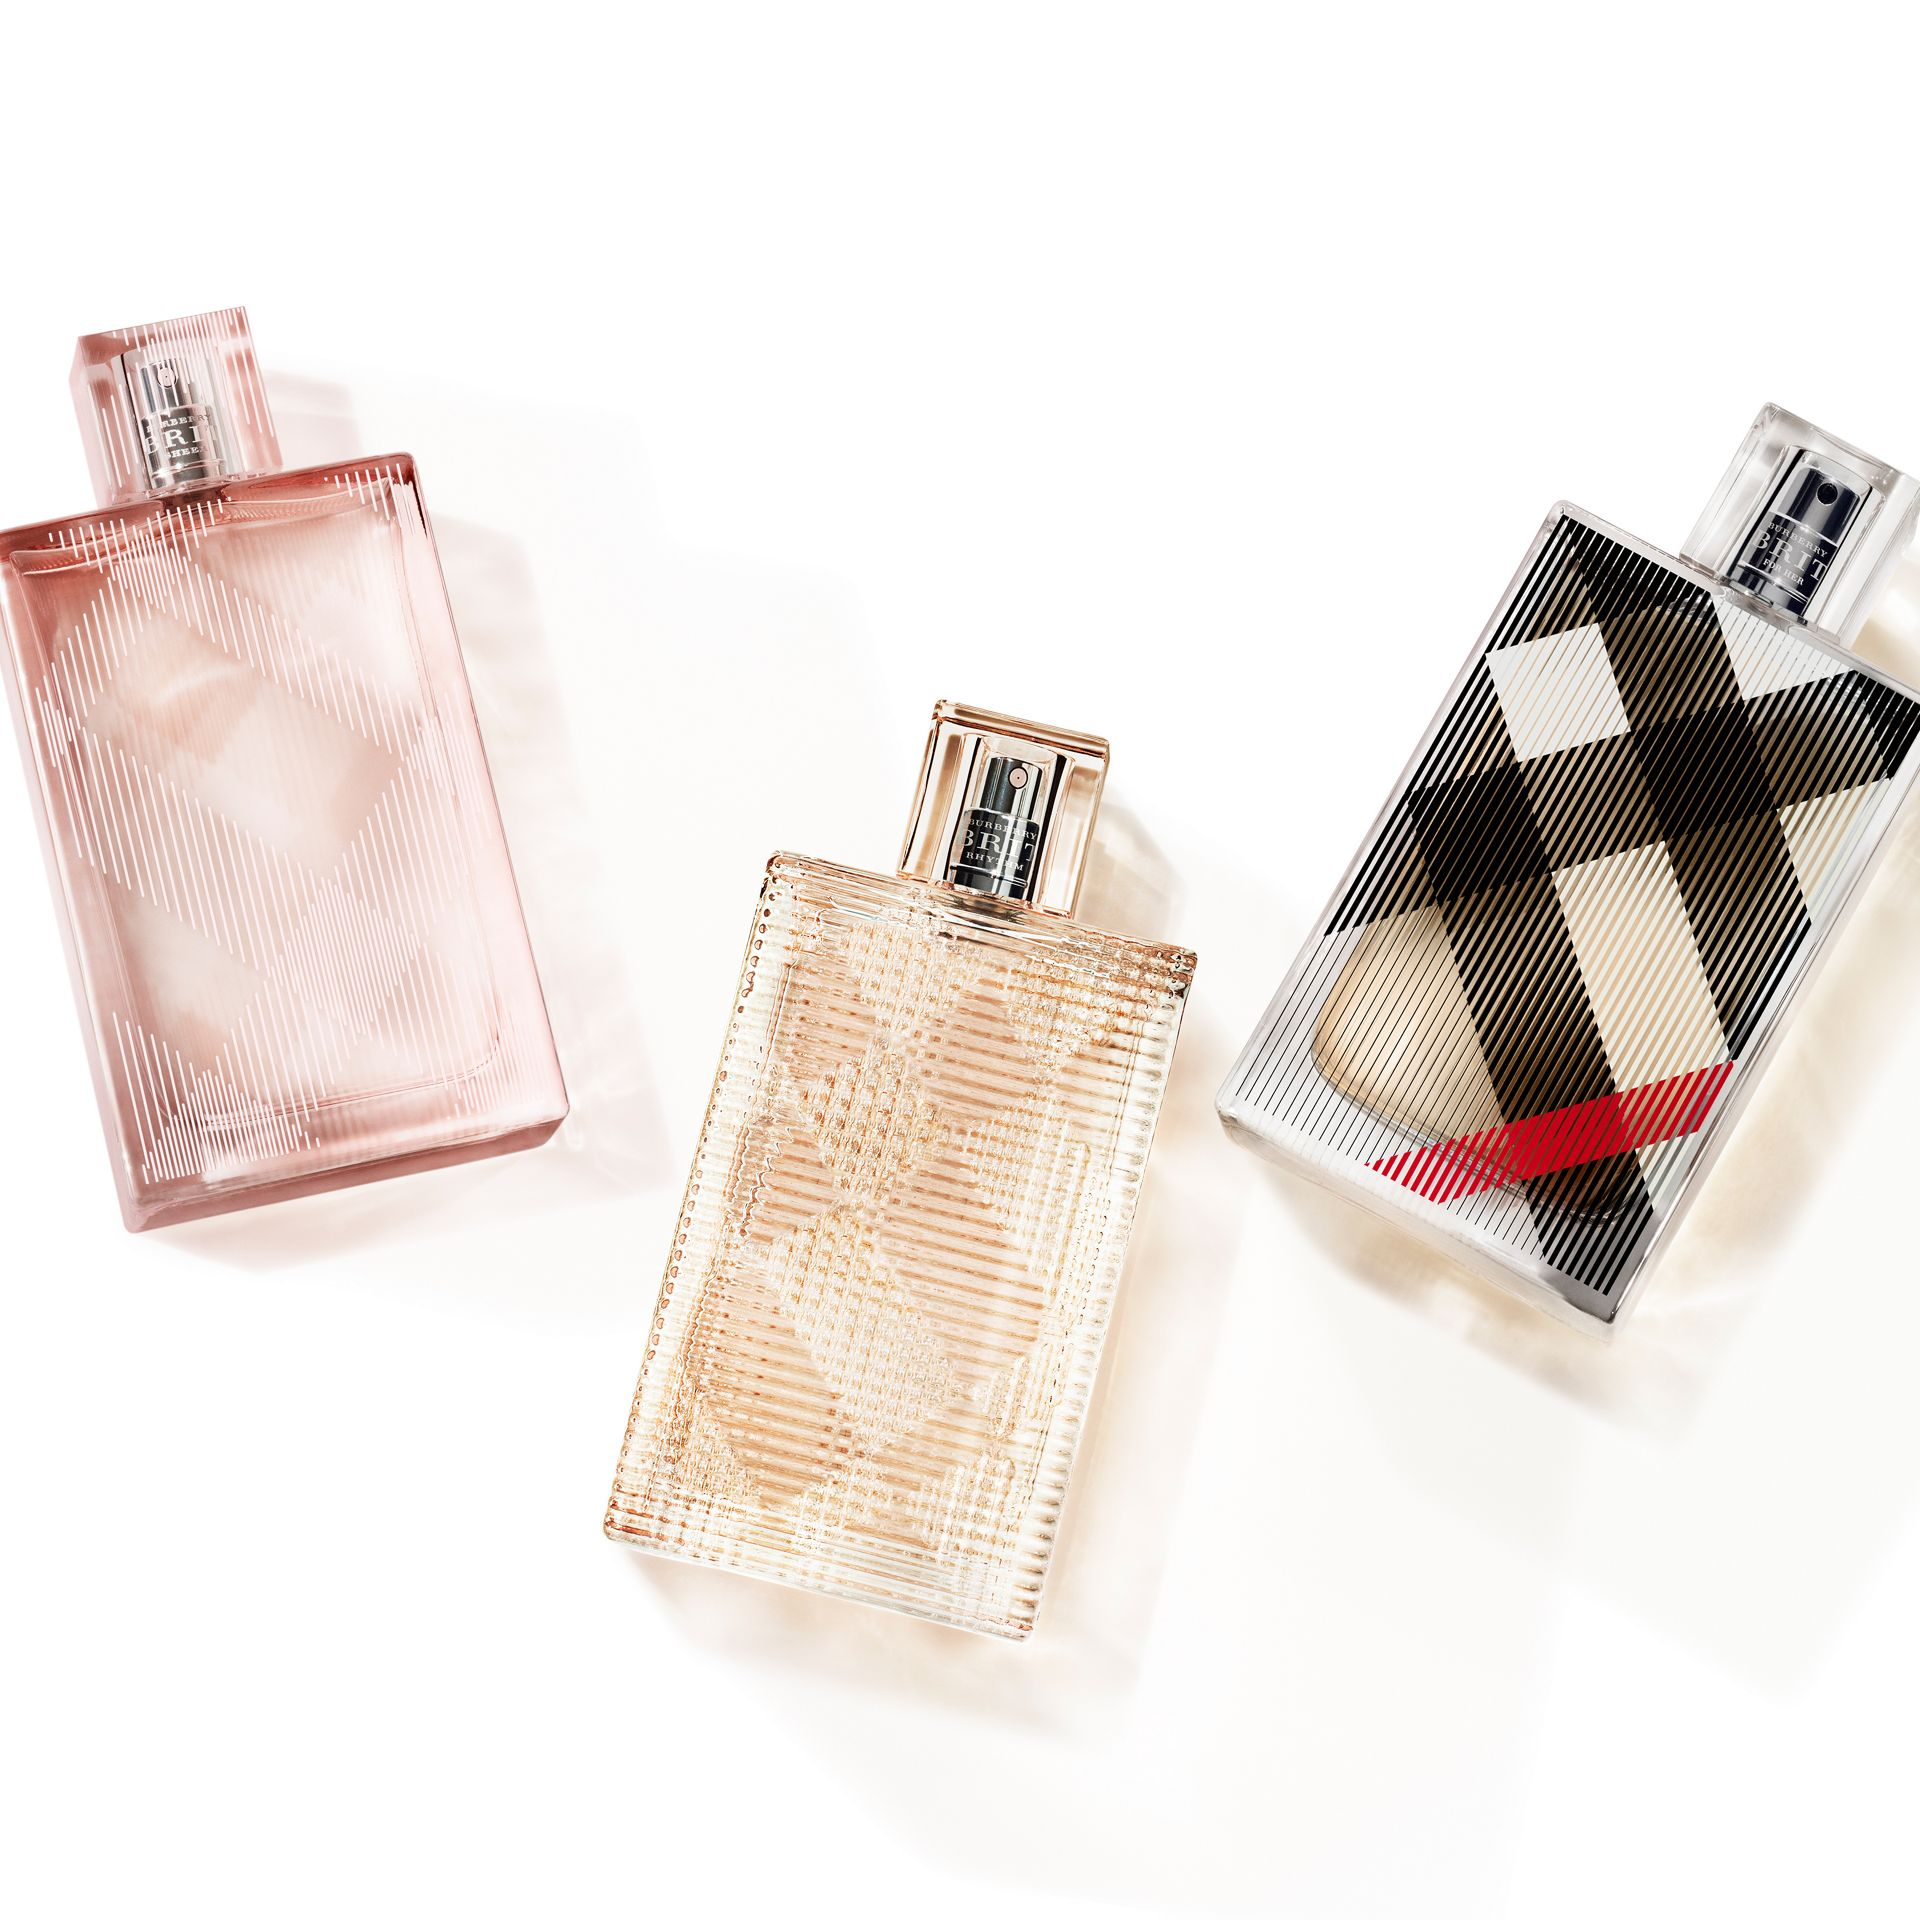 Burberry Brit For Her Eau De Parfum 50 ml - Galerie-Bild 4